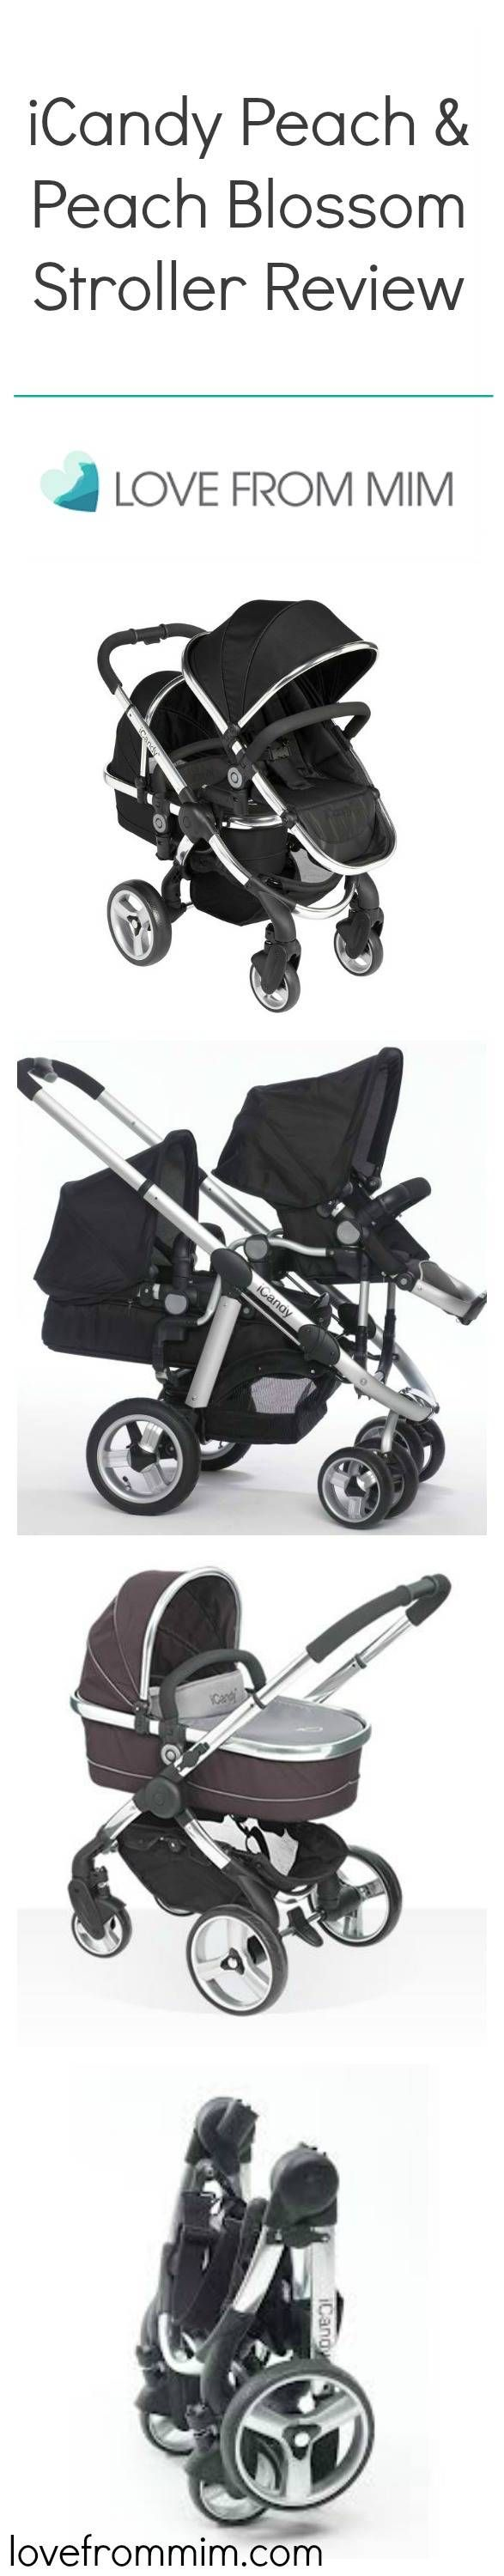 Newborn Baby Buggy Reviews Icandy Peach Stroller Review Worth The Price Tag Mom